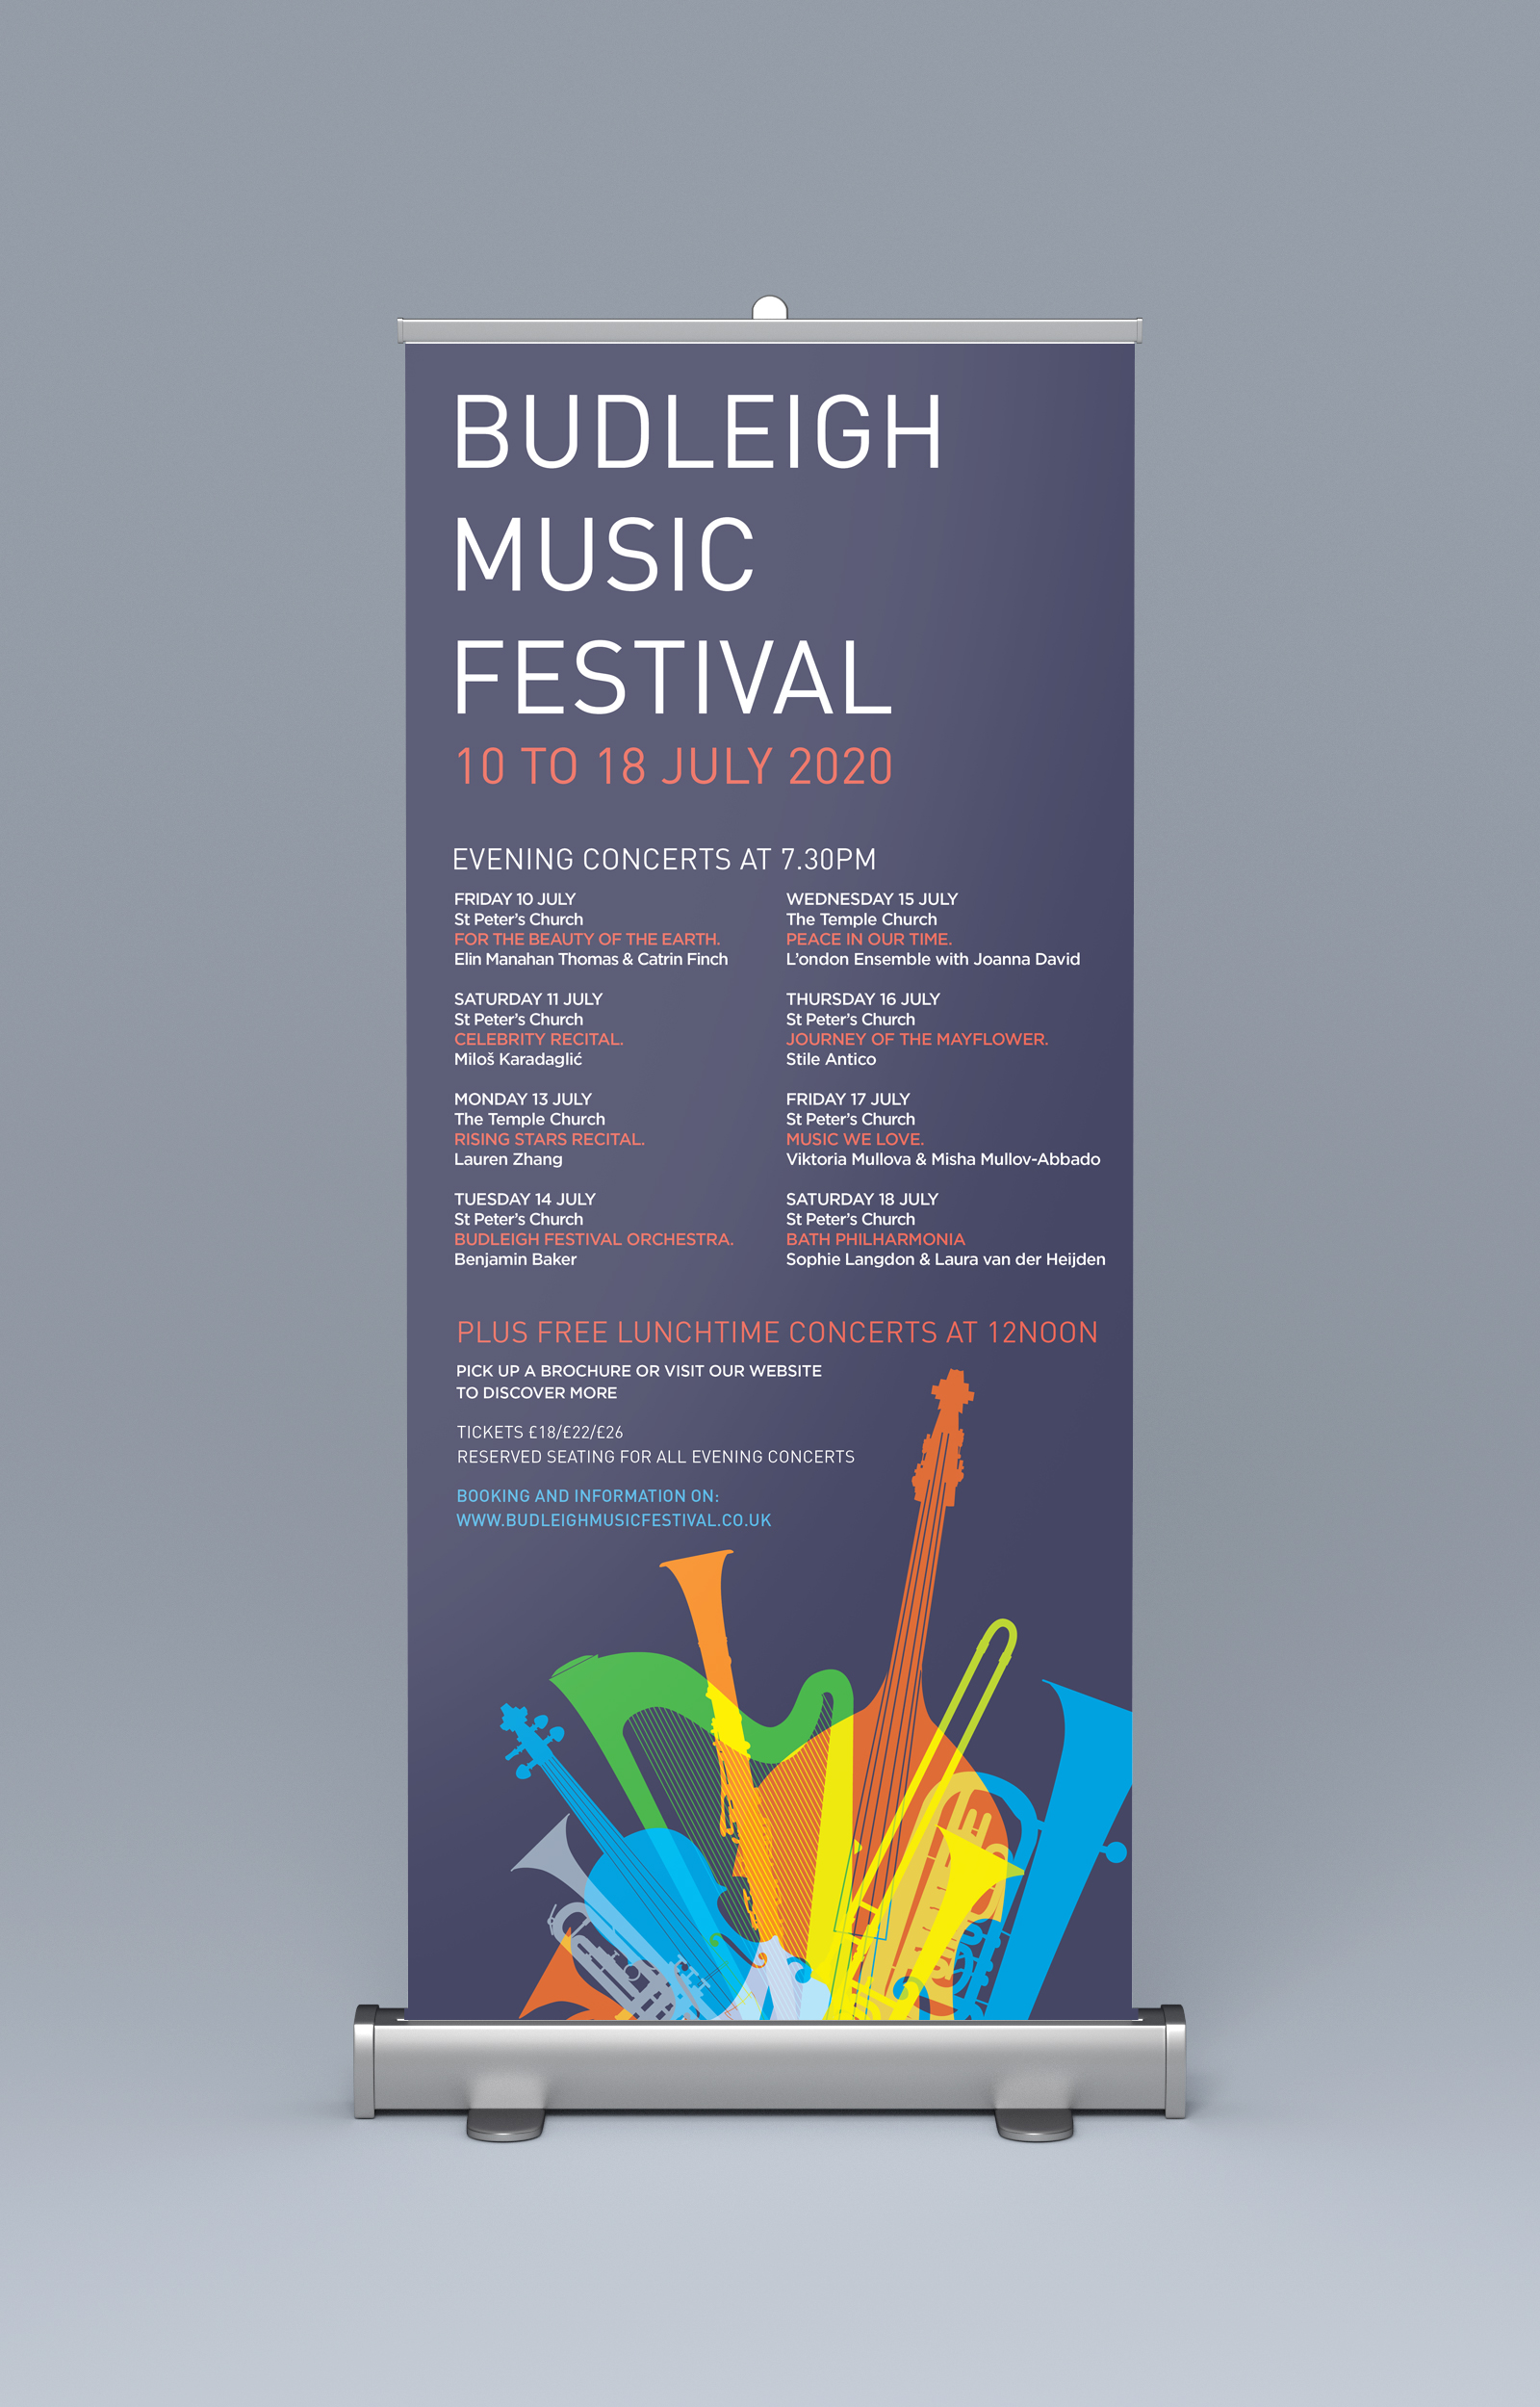 Roller banner for the Budleigh Music Festival